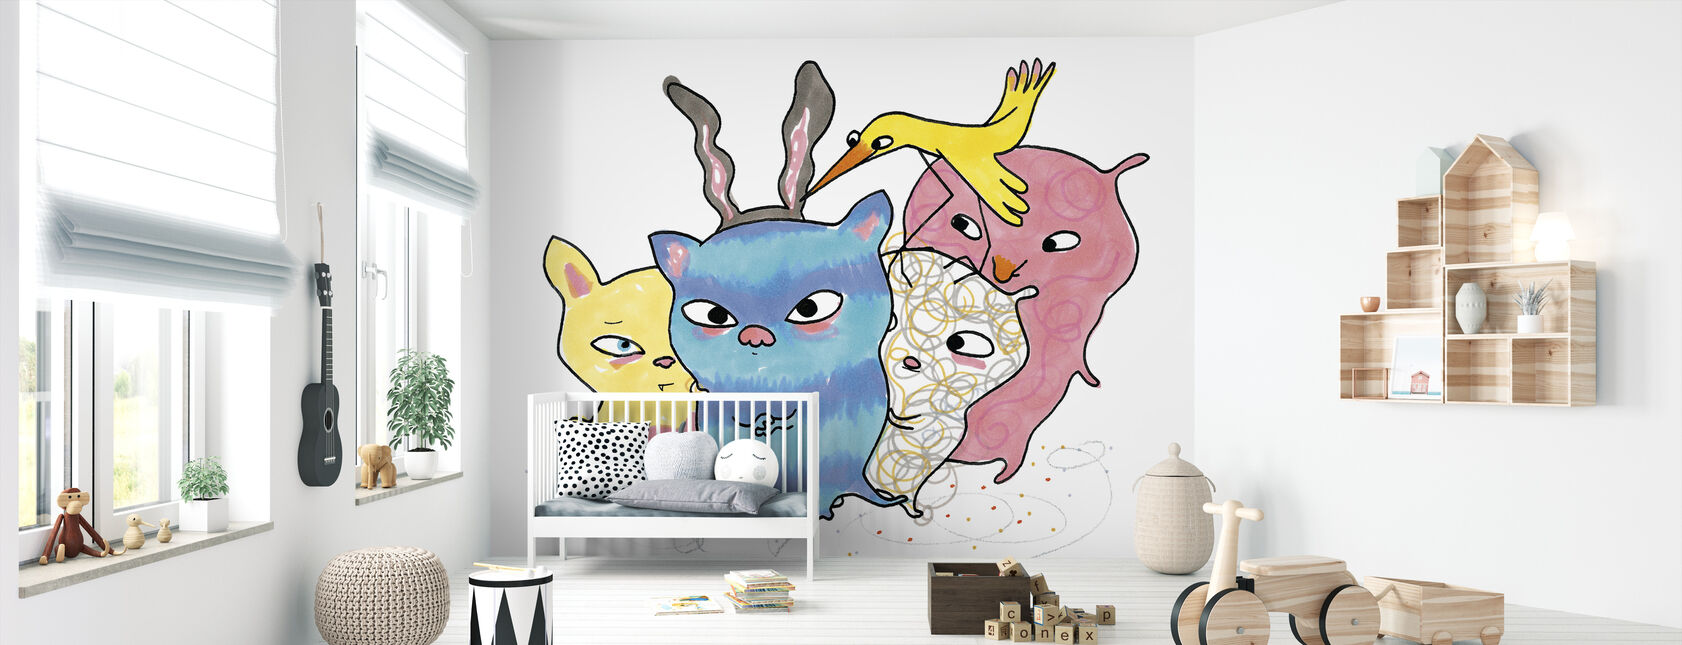 Vemdjuren 3 - Wallpaper - Nursery